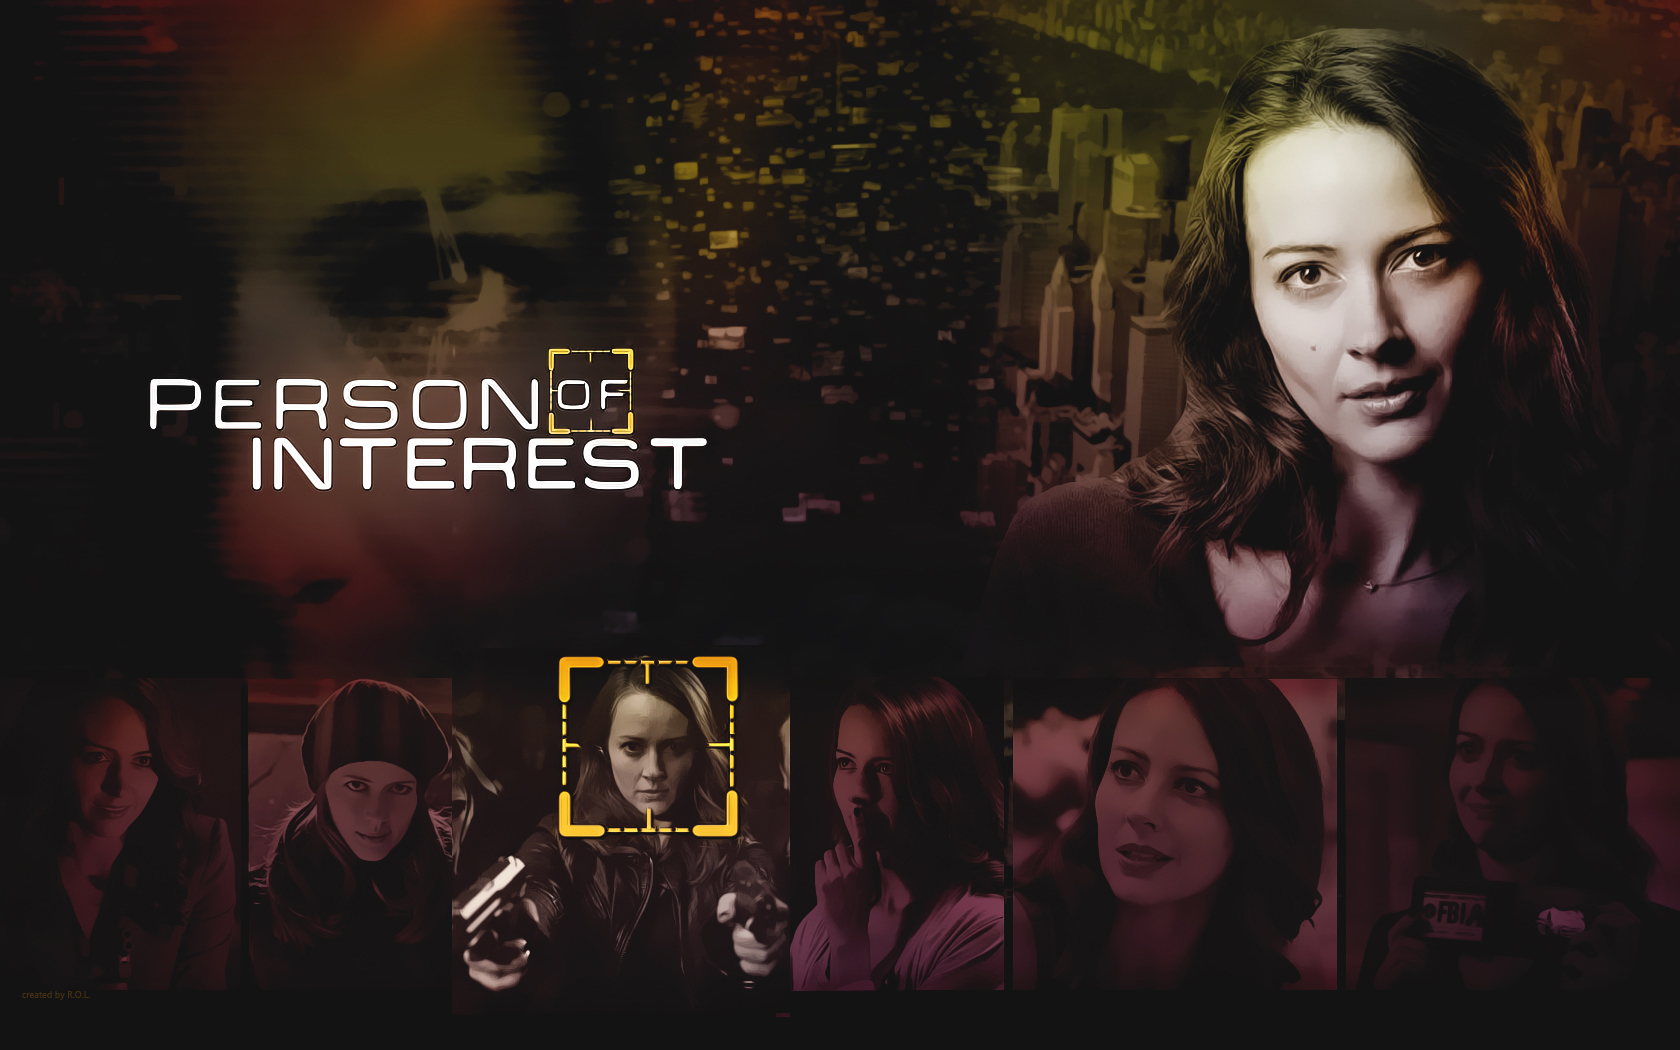 person of interest wallpapers 1920x1080 - photo #31